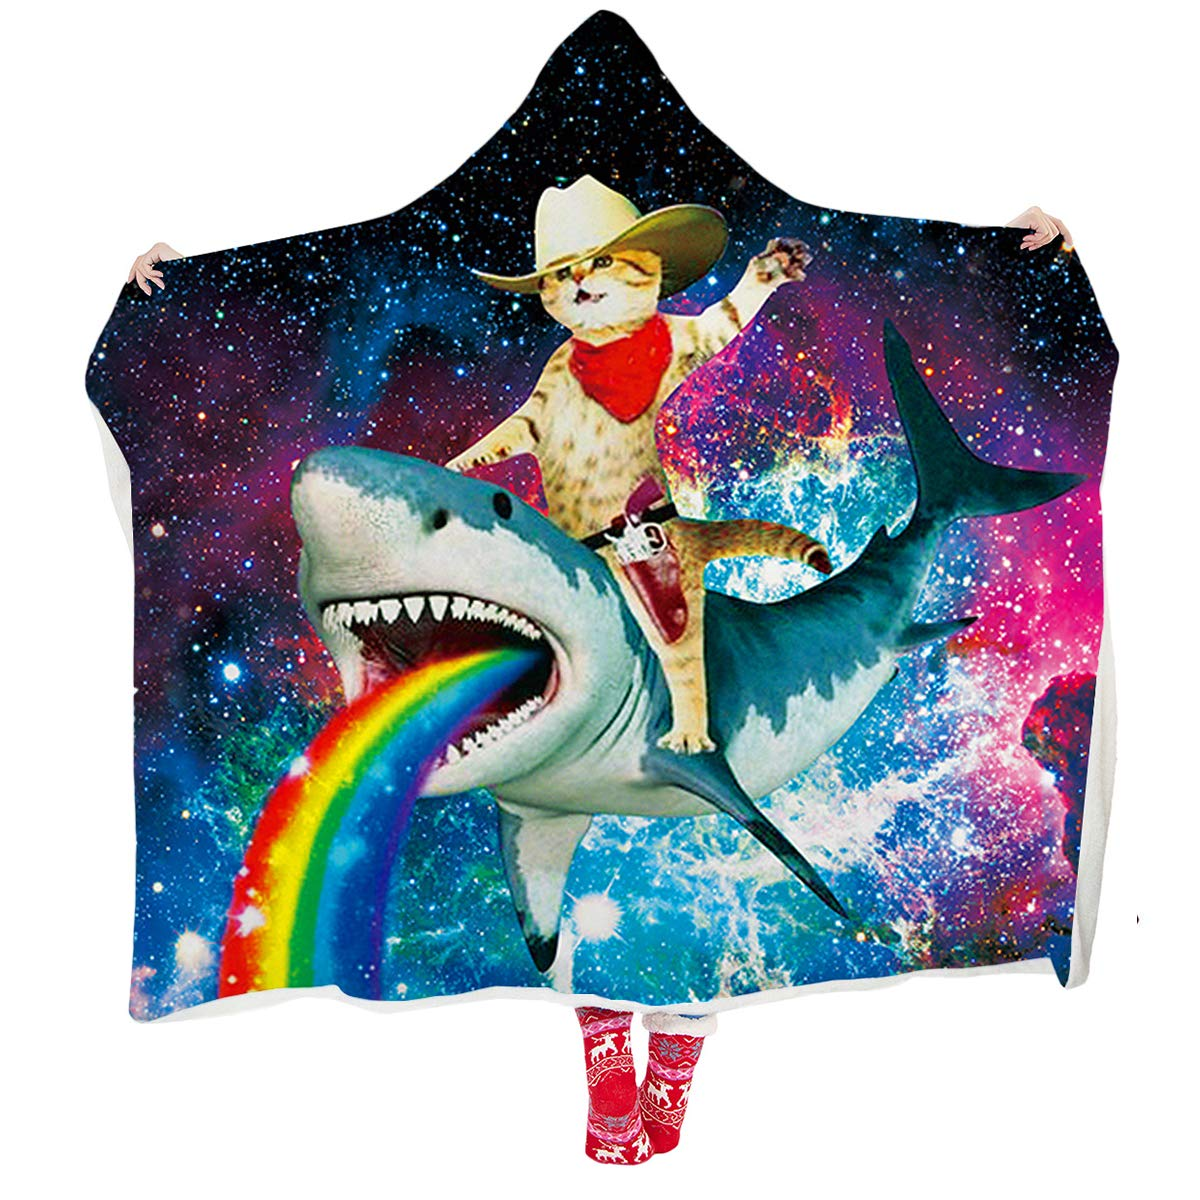 ALISISTER Hooded Blanket Adult Women Men 3D Galaxy Cat Shark Sherpa Plush Fleece Wearable Throw Blanket 60 X 80 Inches Home Sofa Winter Super Soft Lightweight for Bed Room Spring by ALISISTER